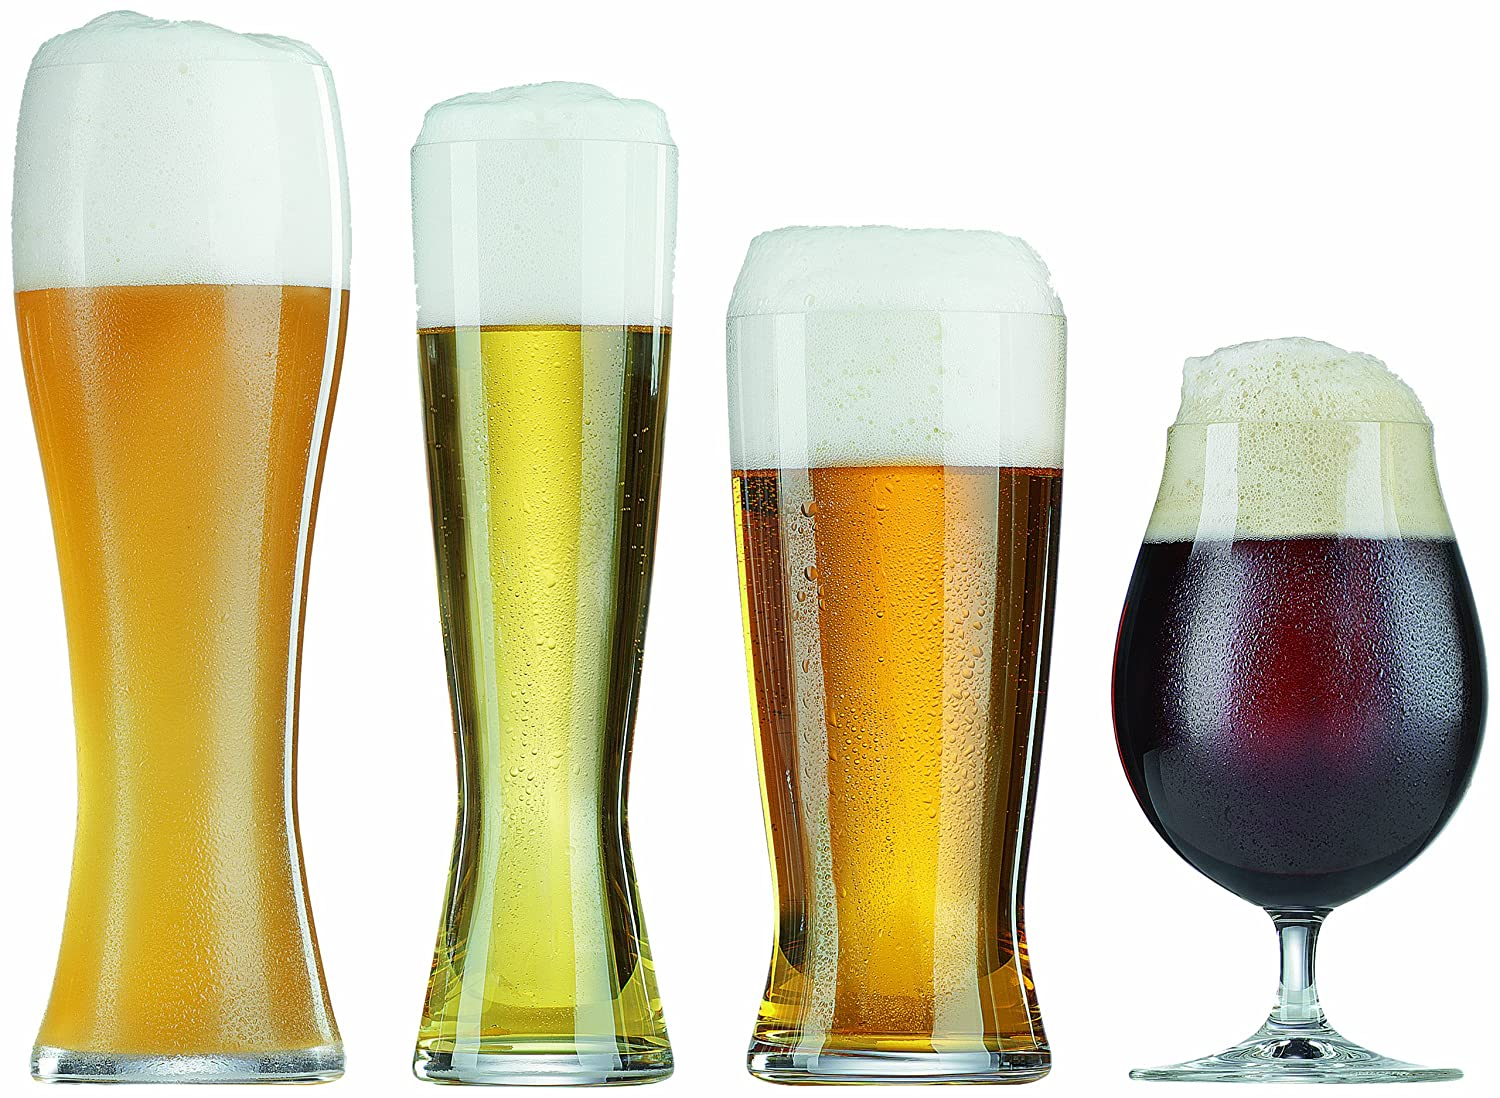 The perfect set of beer glasses for the hip craft beer drinker.